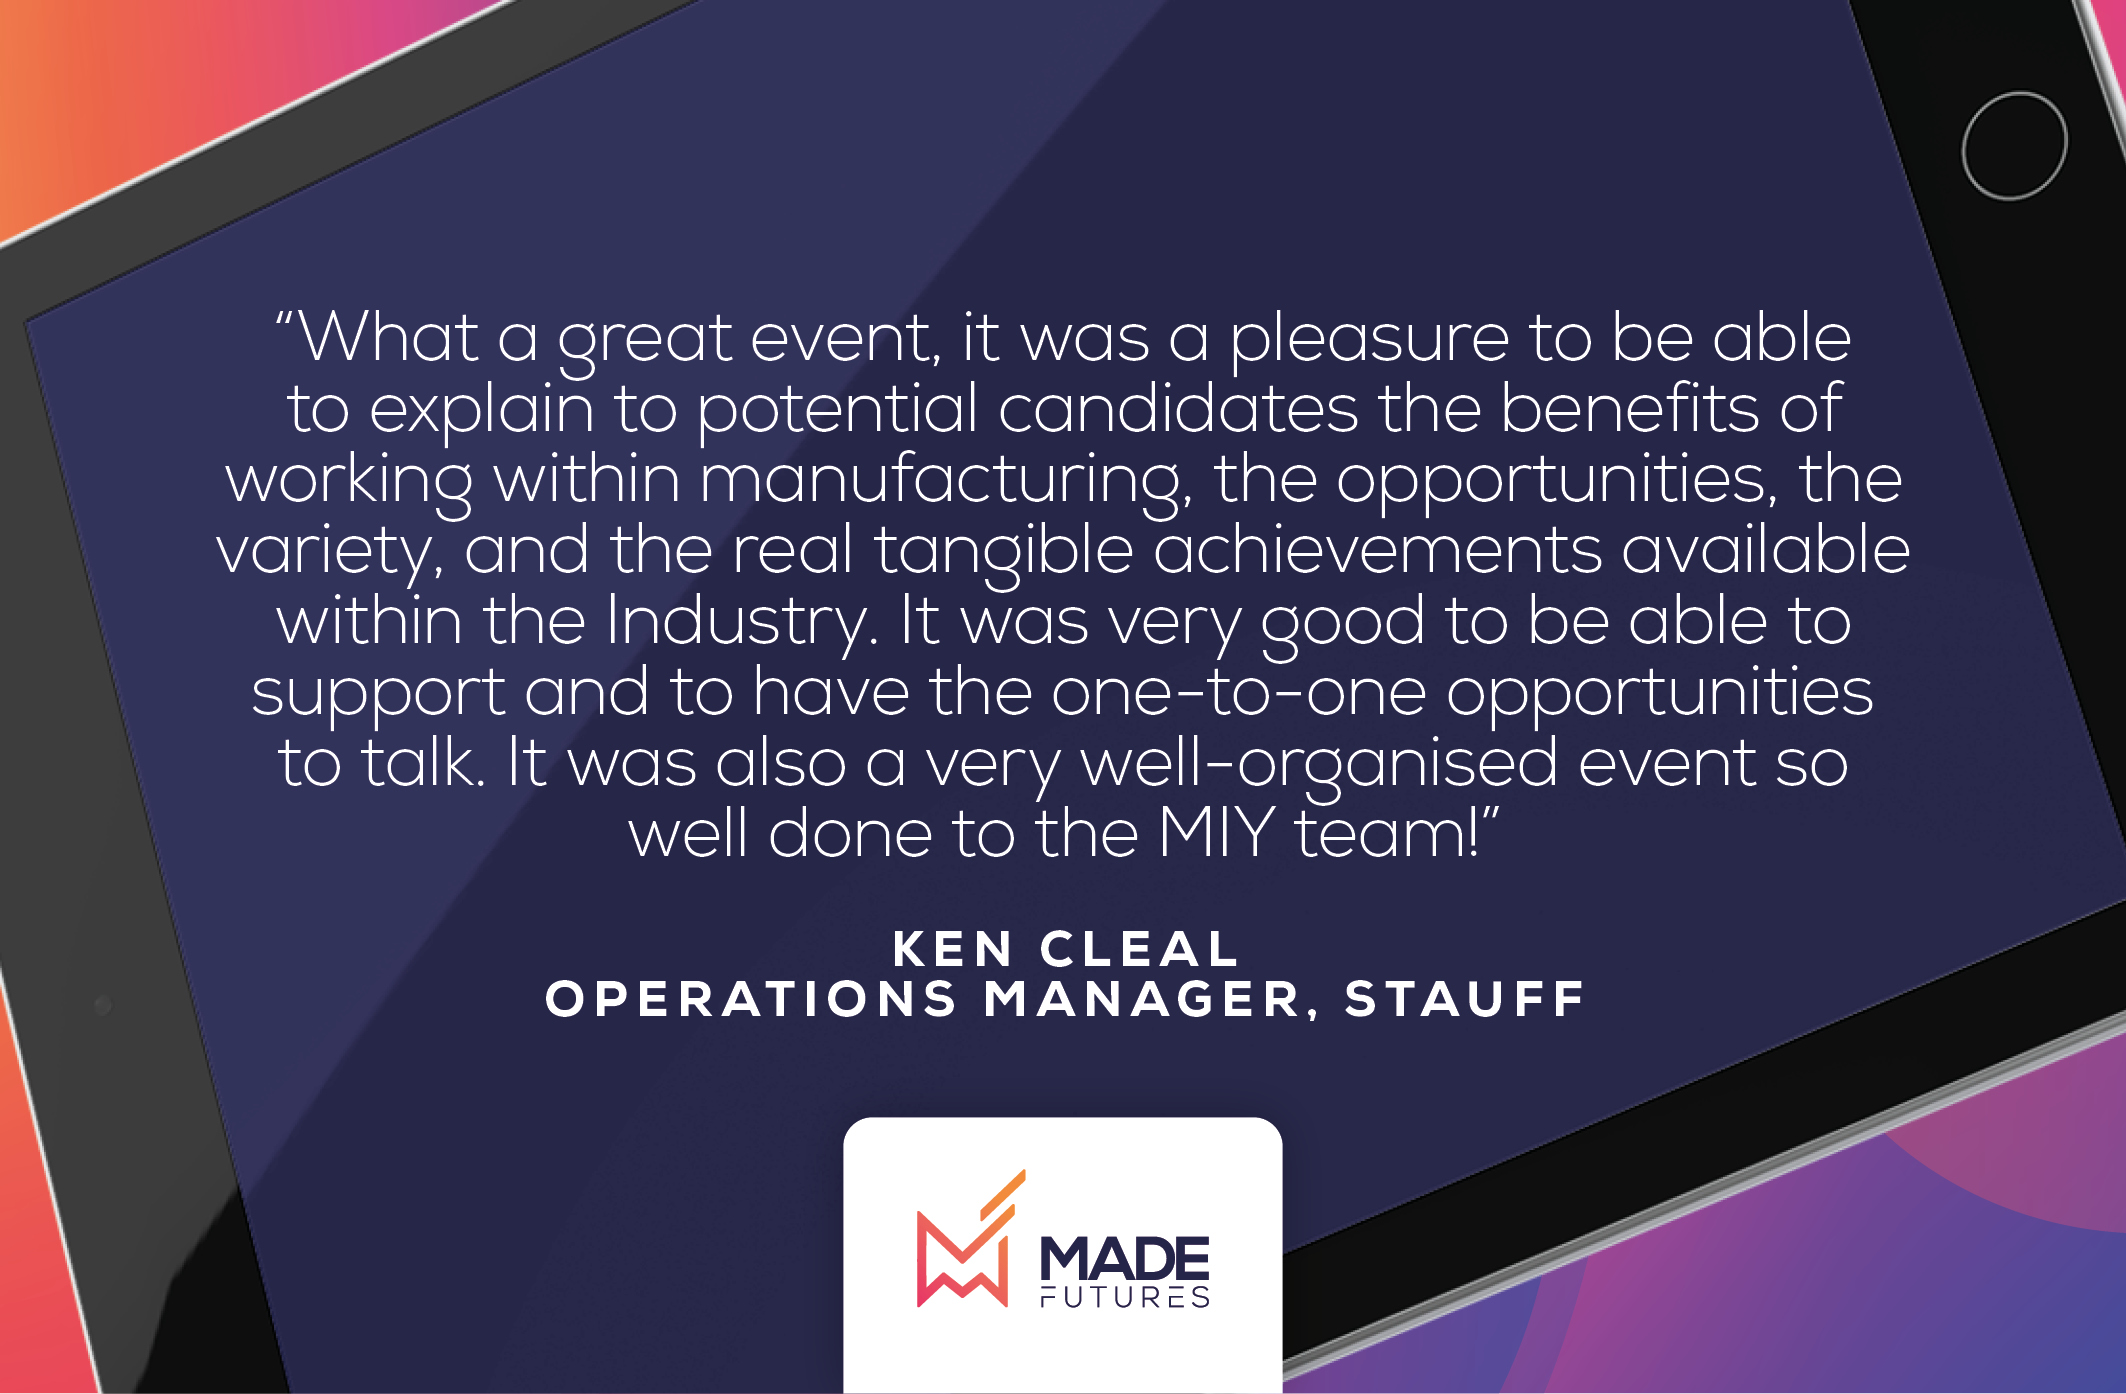 Testimonial by Ken Cleal, Operations manager at Stauff